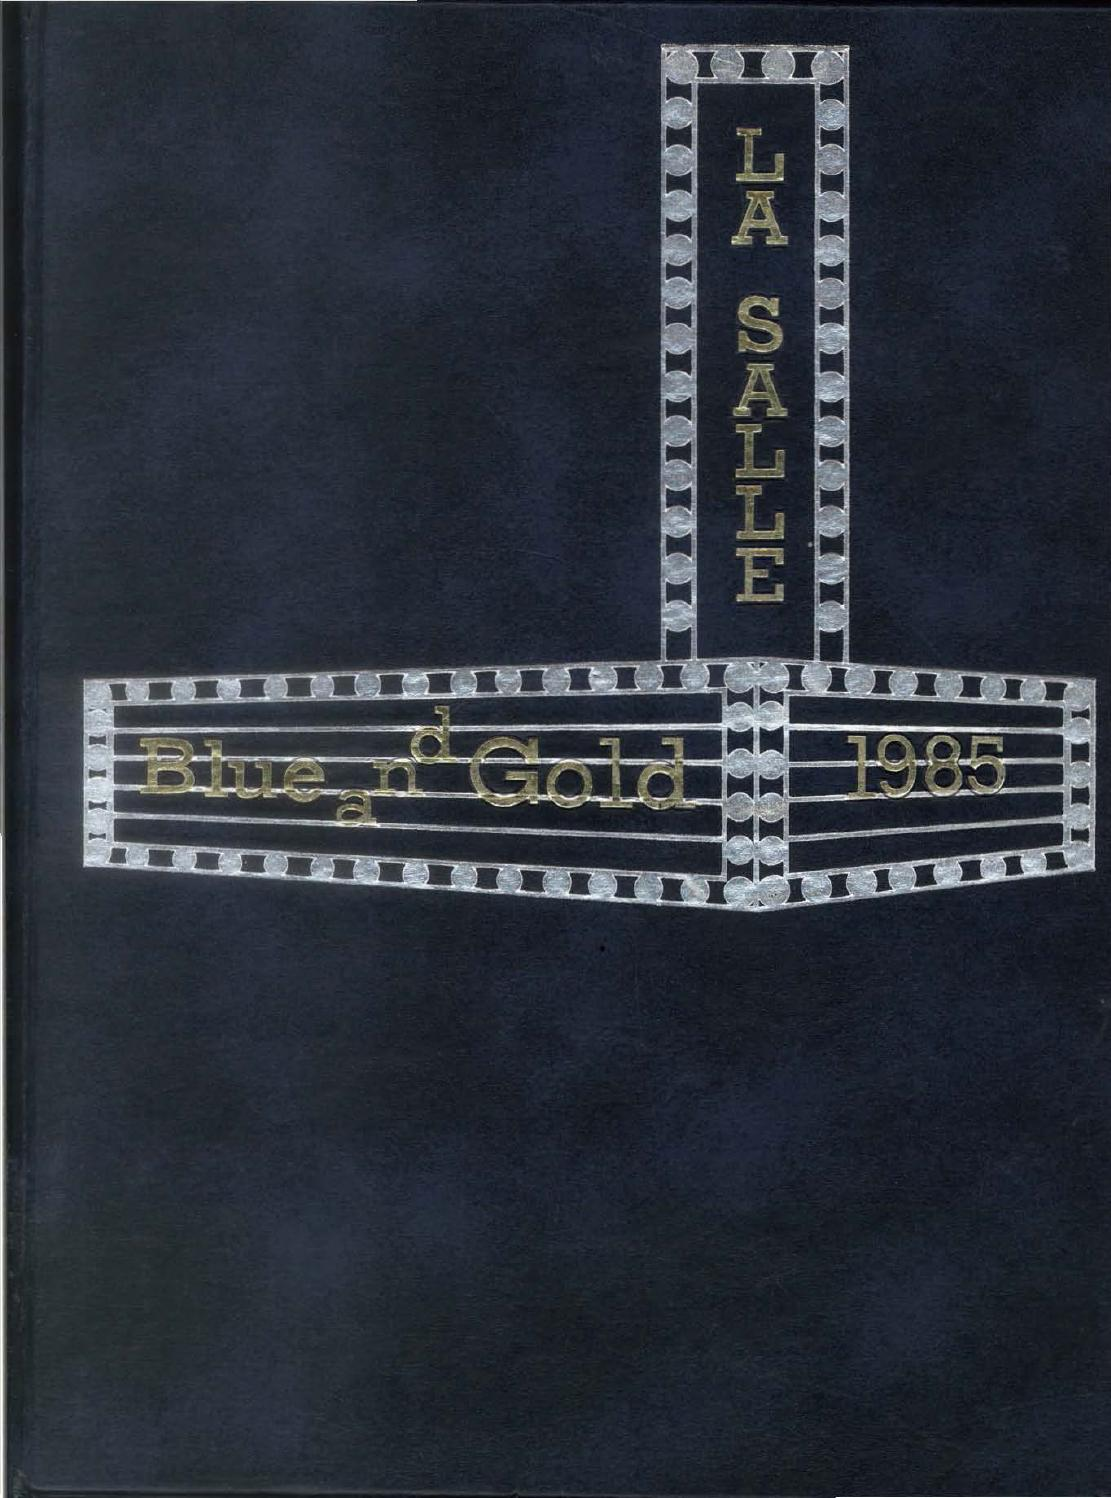 1985 Blue And Gold Yearbook By La Salle College High School Issuu Cotton Bud Refill Isi 80 Kode 188